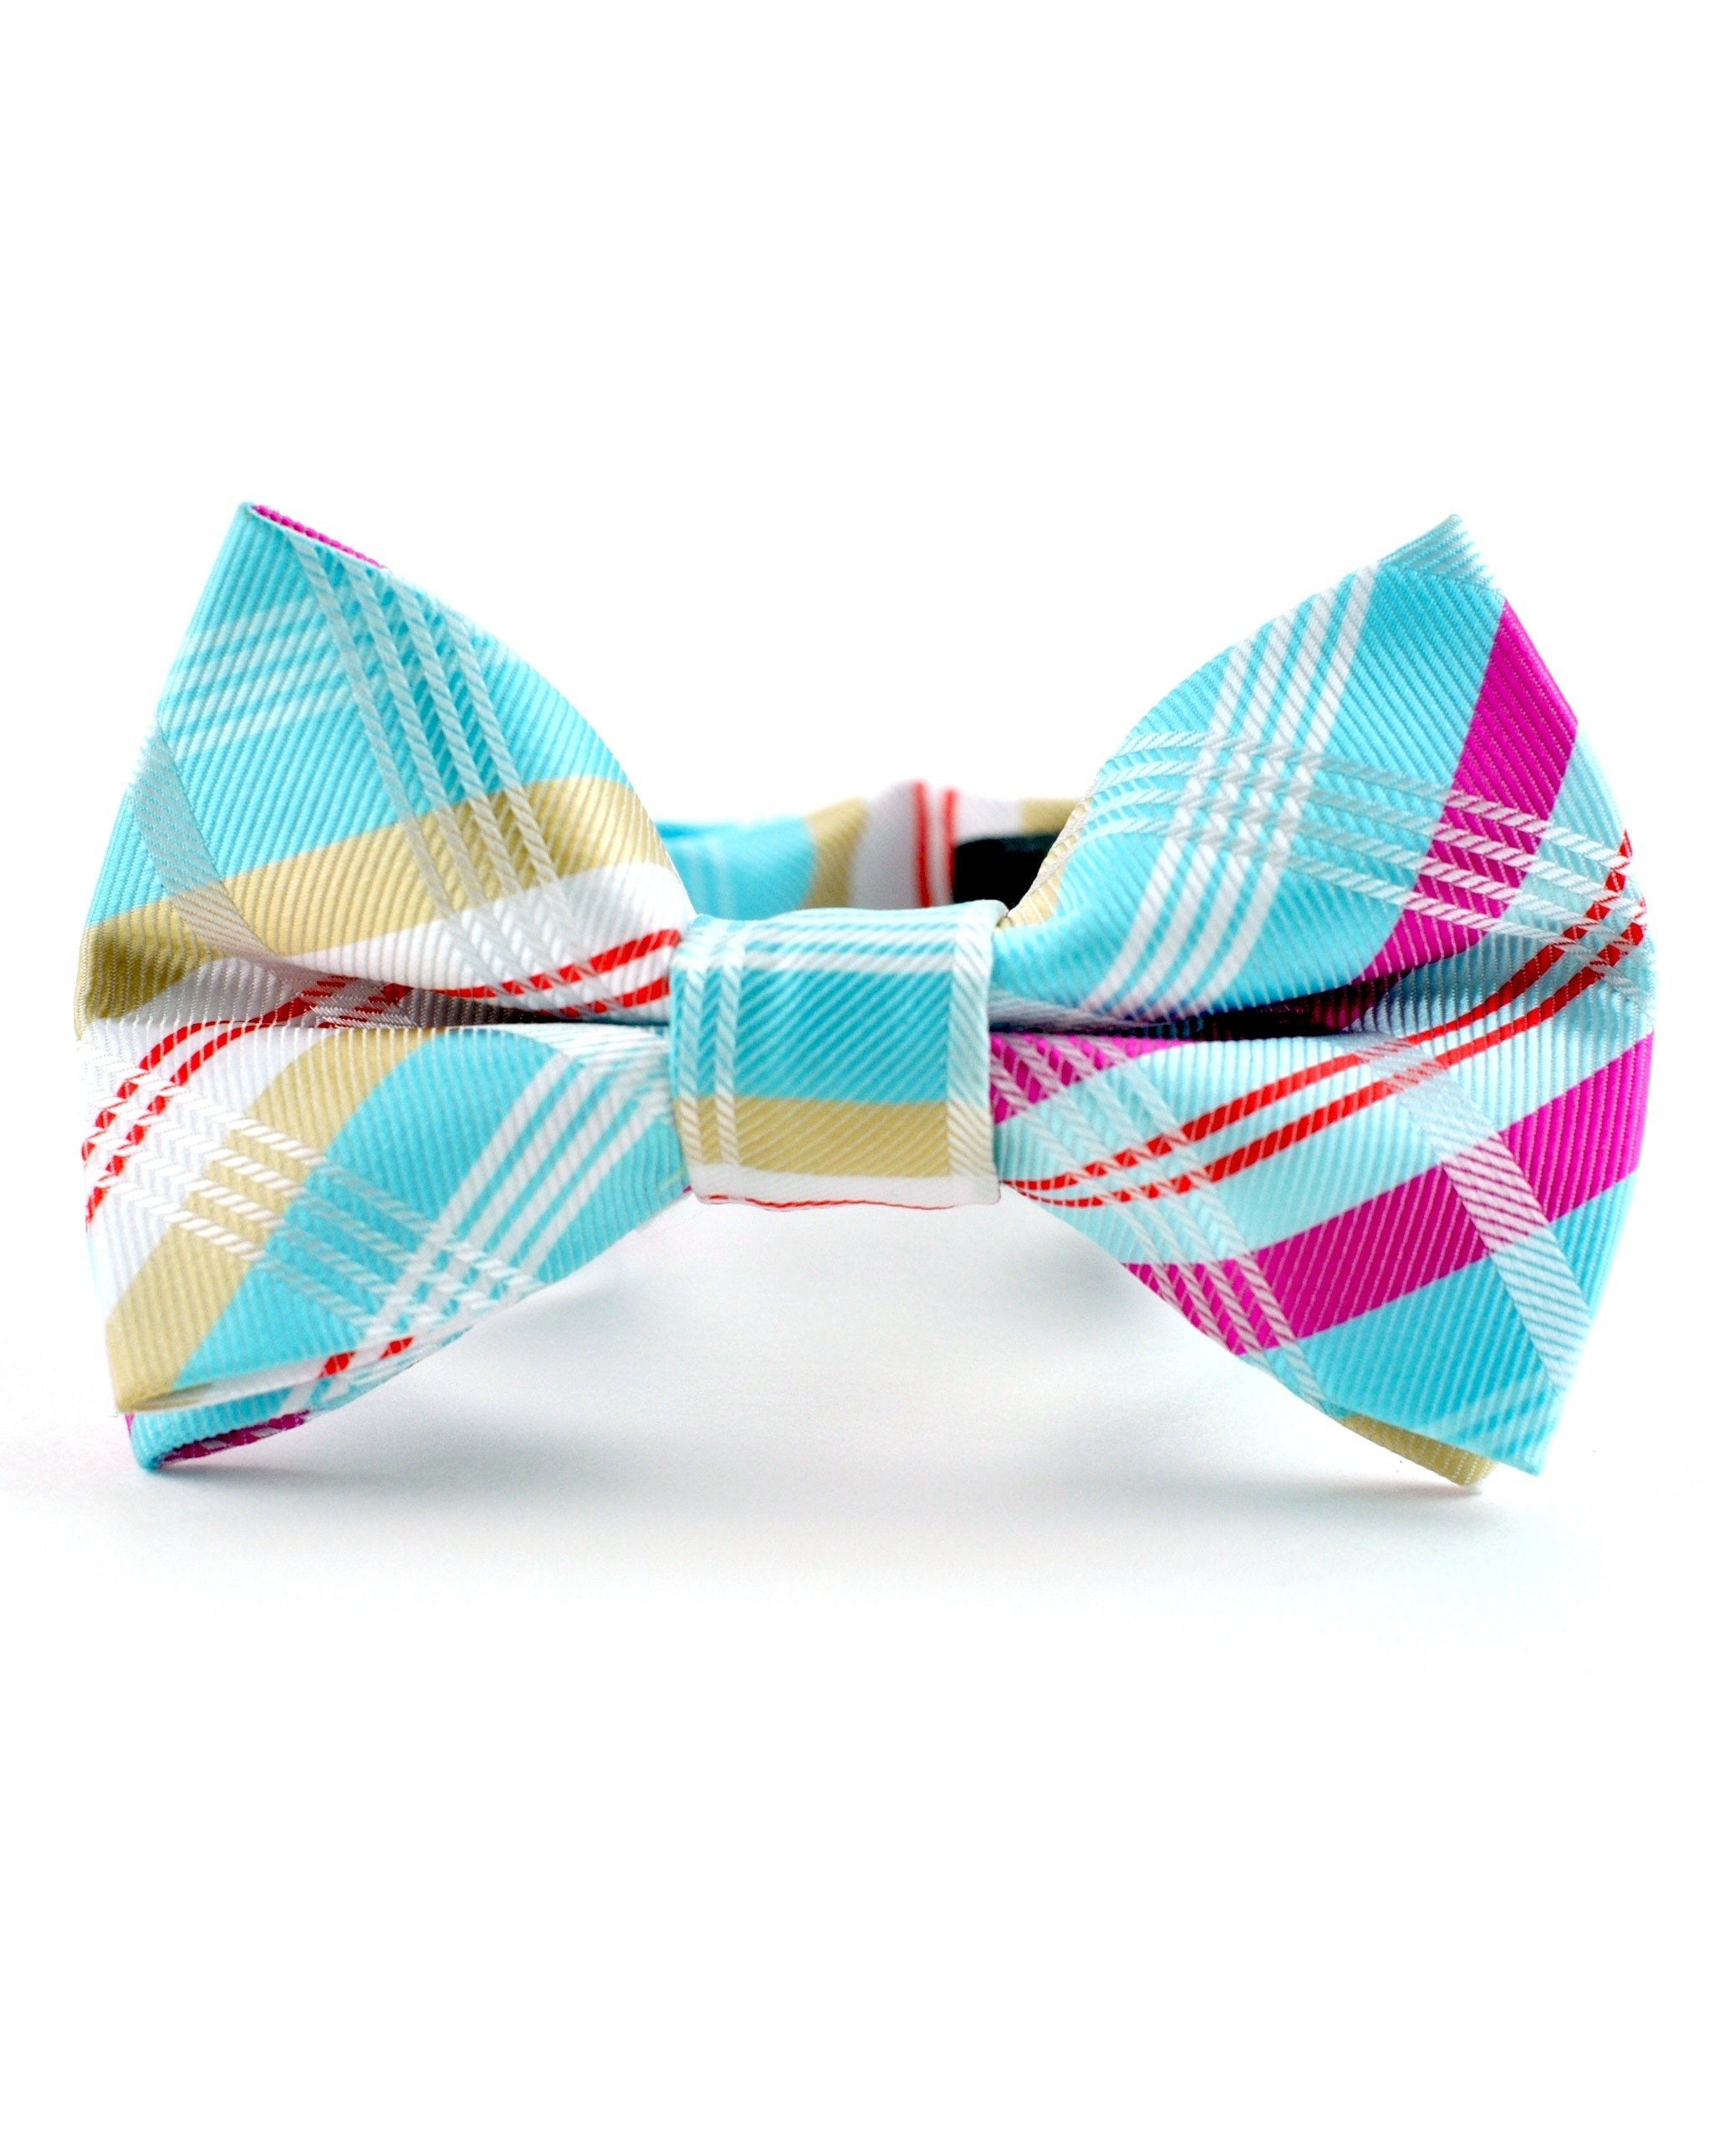 aqua-and-fuchsia-plaid-bow-tie.jpg